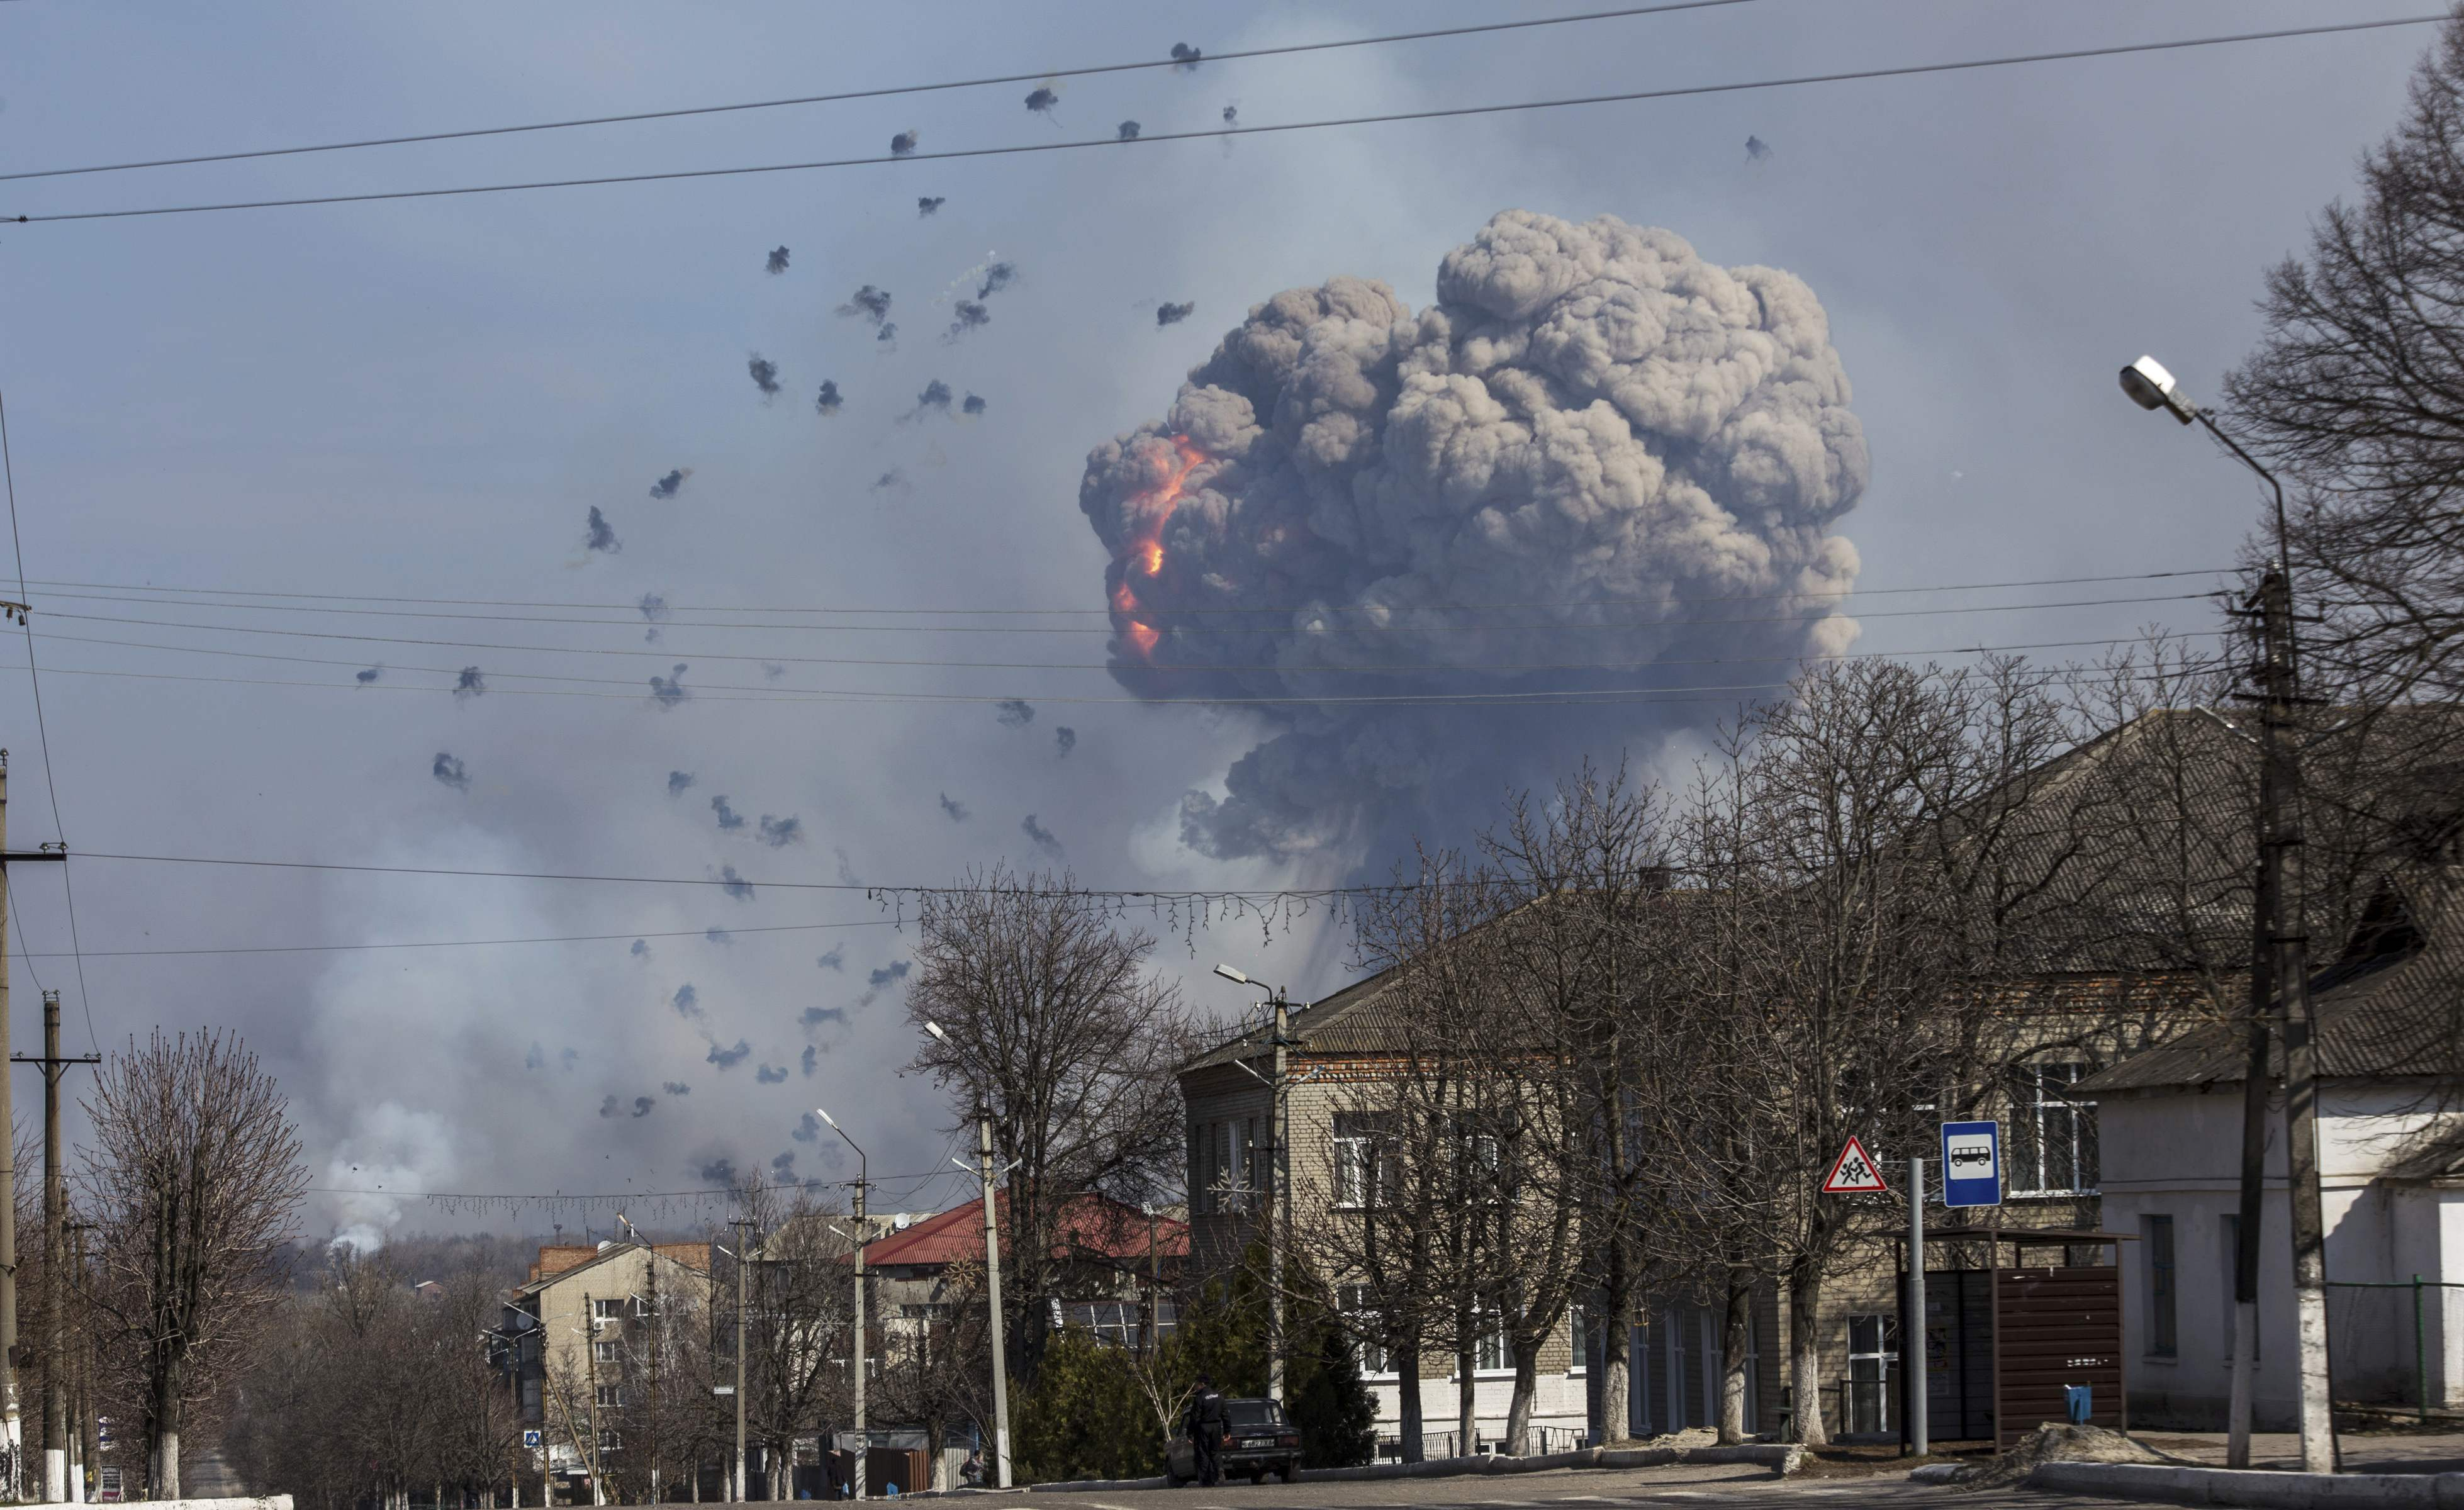 Flames shoot into the sky from a warehouse storing tank ammunition at a military base in the town of Balaklia (Balakleya), Kharkiv region, Ukraine, March 23, 2017. REUTERS/Alexander Sadovoy